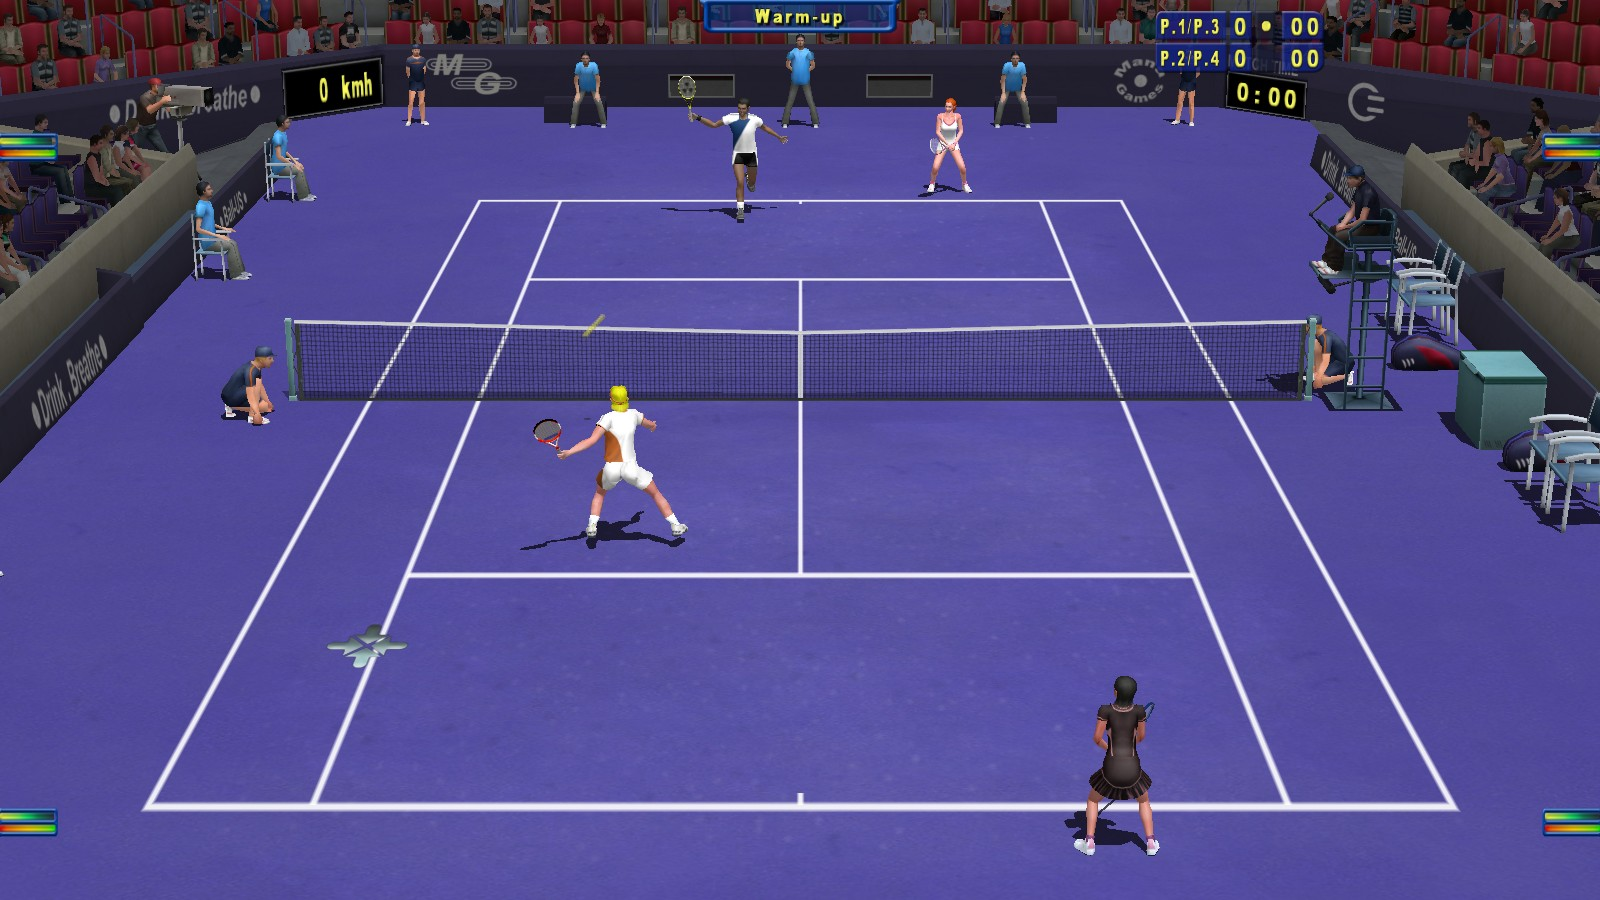 Tennis elbow 2013 download free